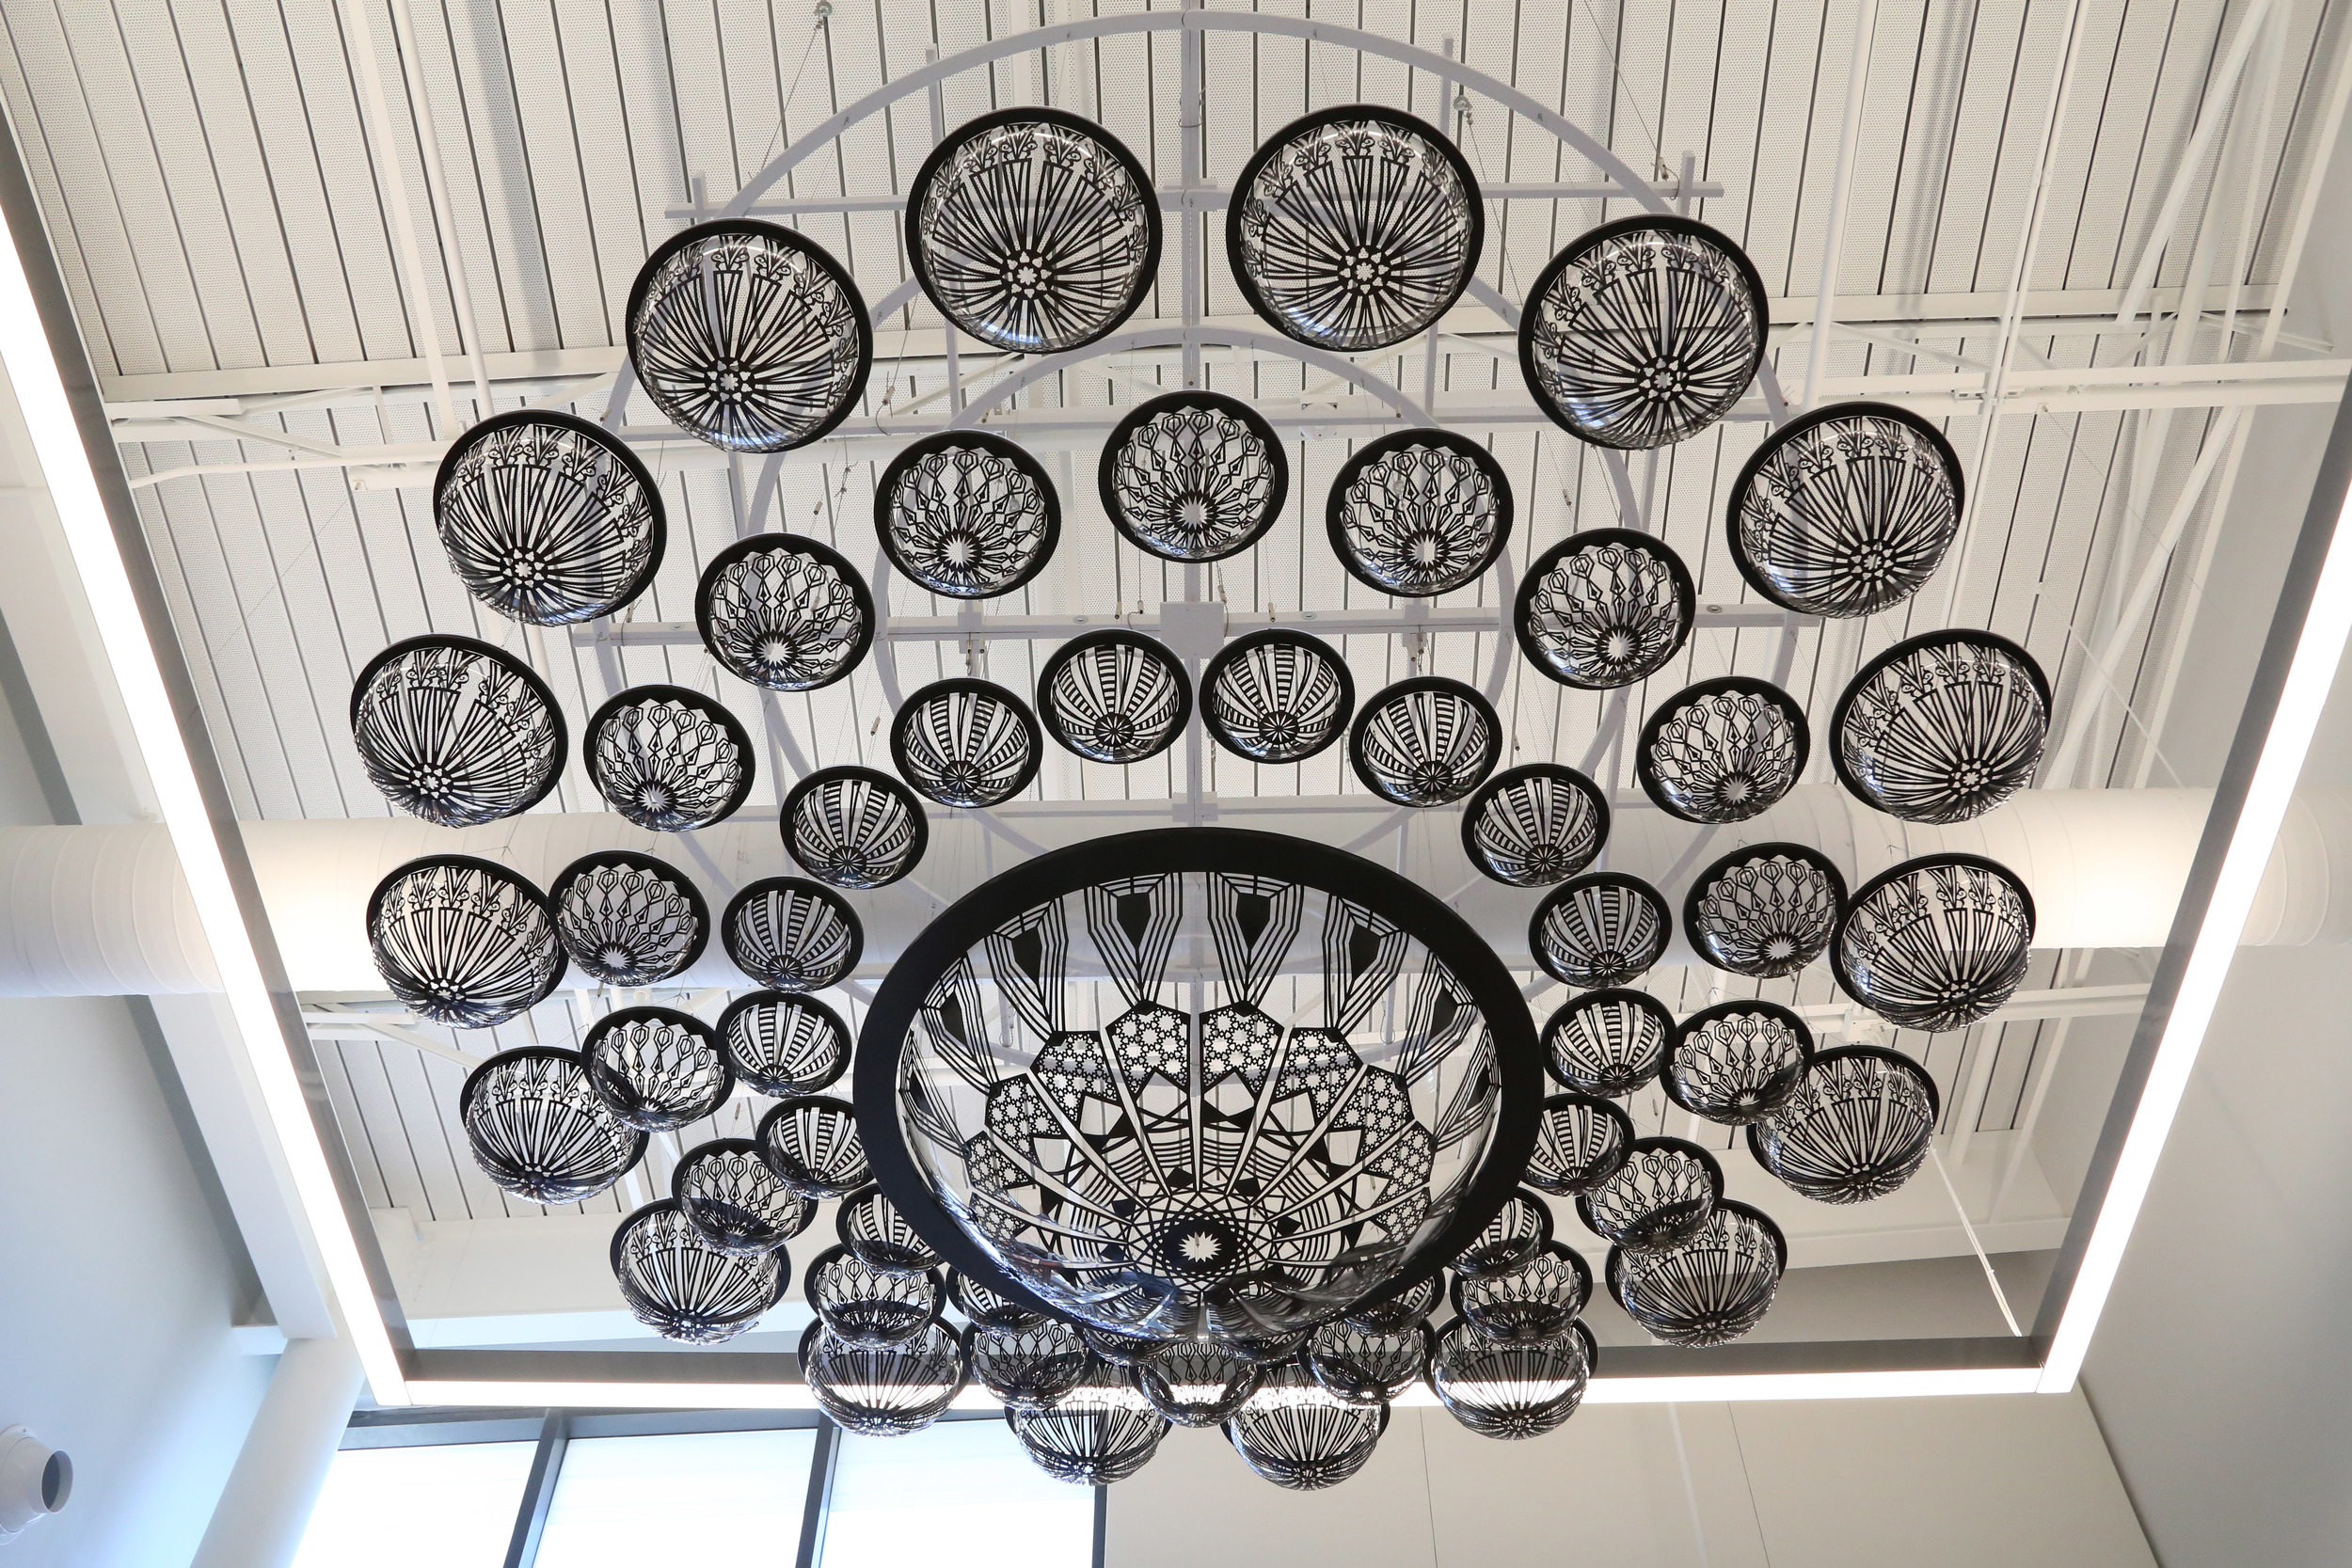 The Dayton Metropolitan Library ceiling sculpture by Virginia Kistler. Laser cutting by WE LASERS.